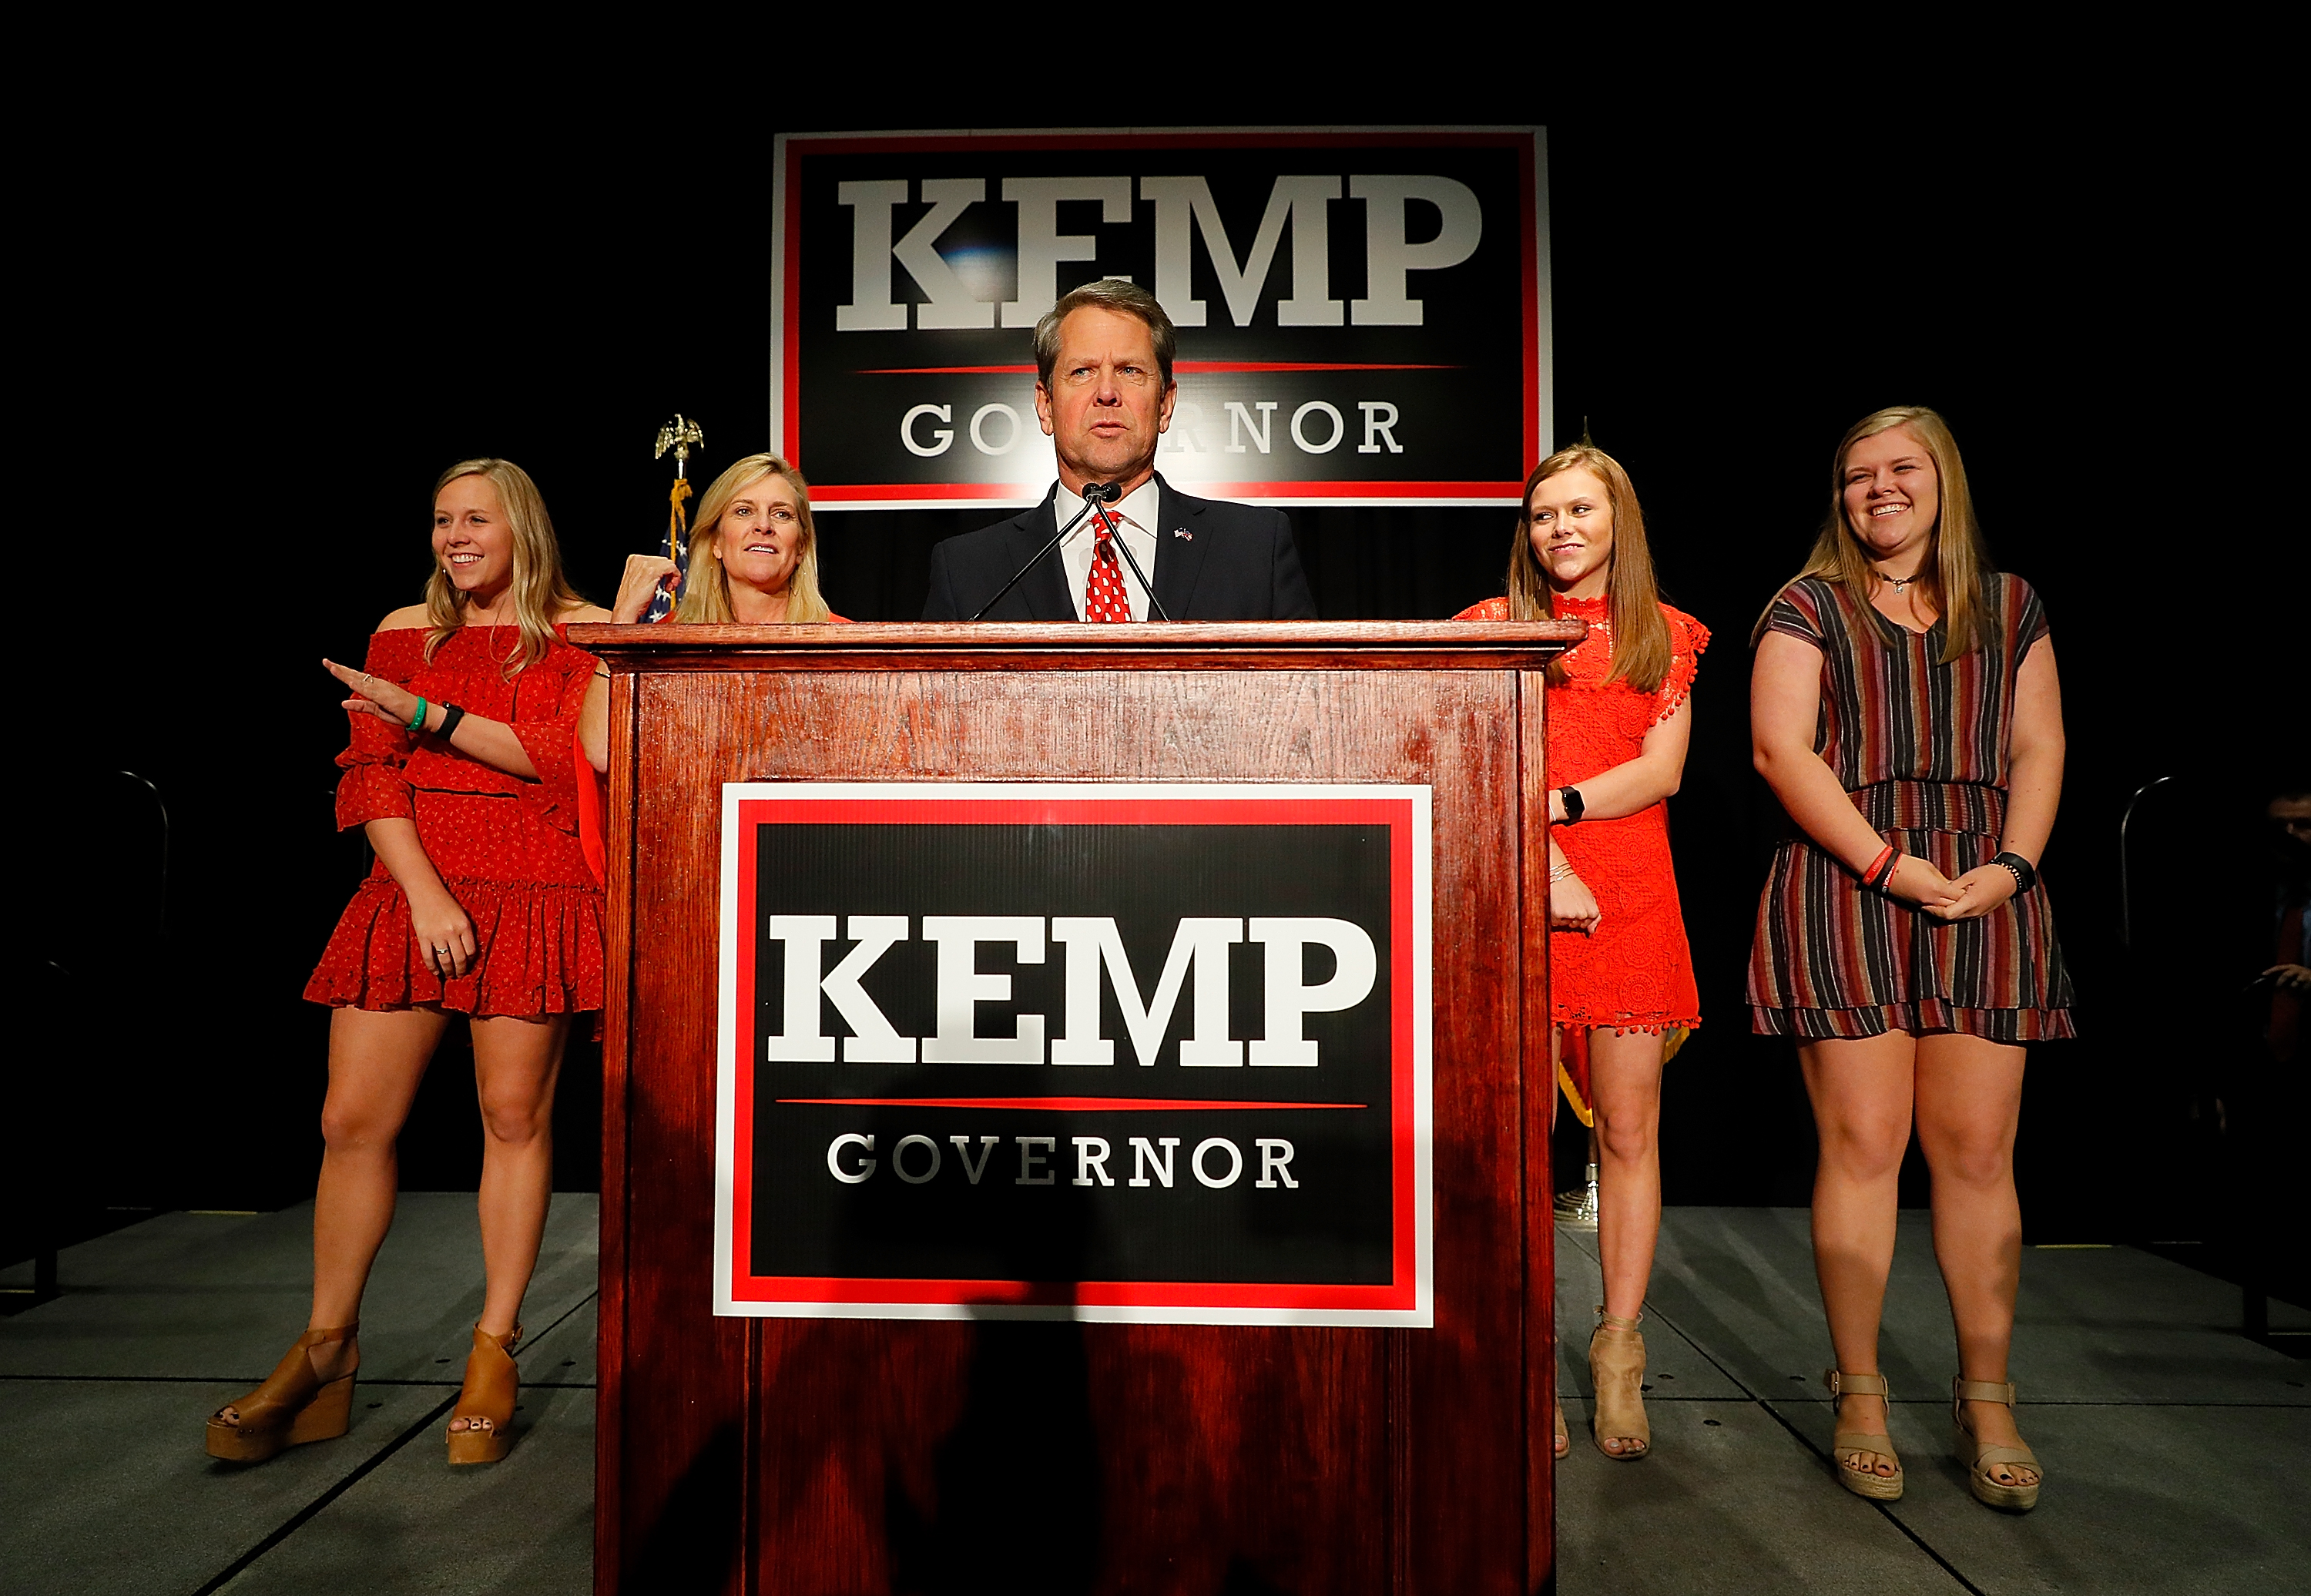 ATHENS, GA - NOVEMBER 06: Republican gubernatorial candidate Brian Kemp attends the Election Night event at the Classic Center on November 6, 2018 in Athens, Georgia. (Kevin C. Cox/Getty Images)